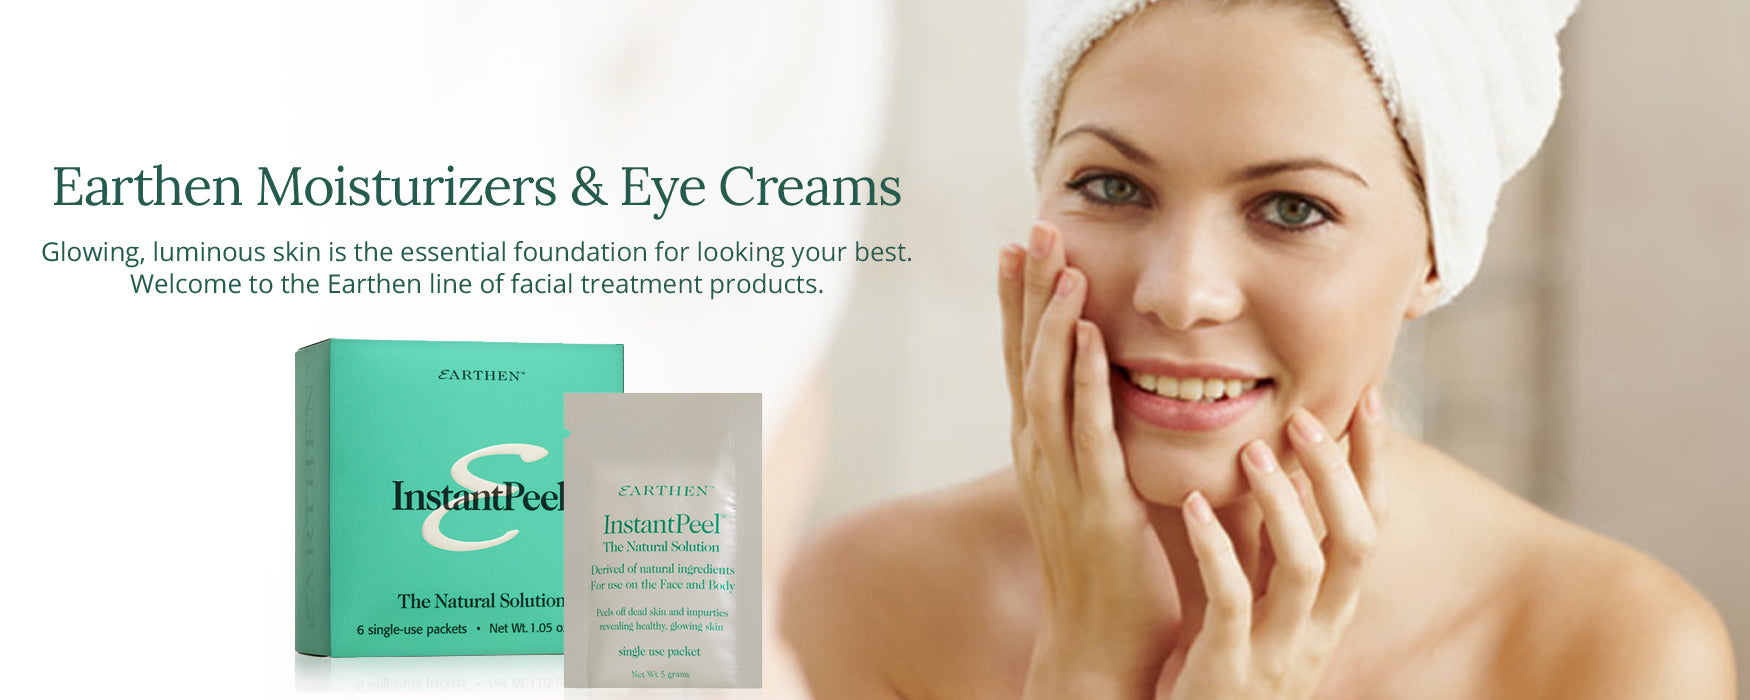 Earthen Skin Care